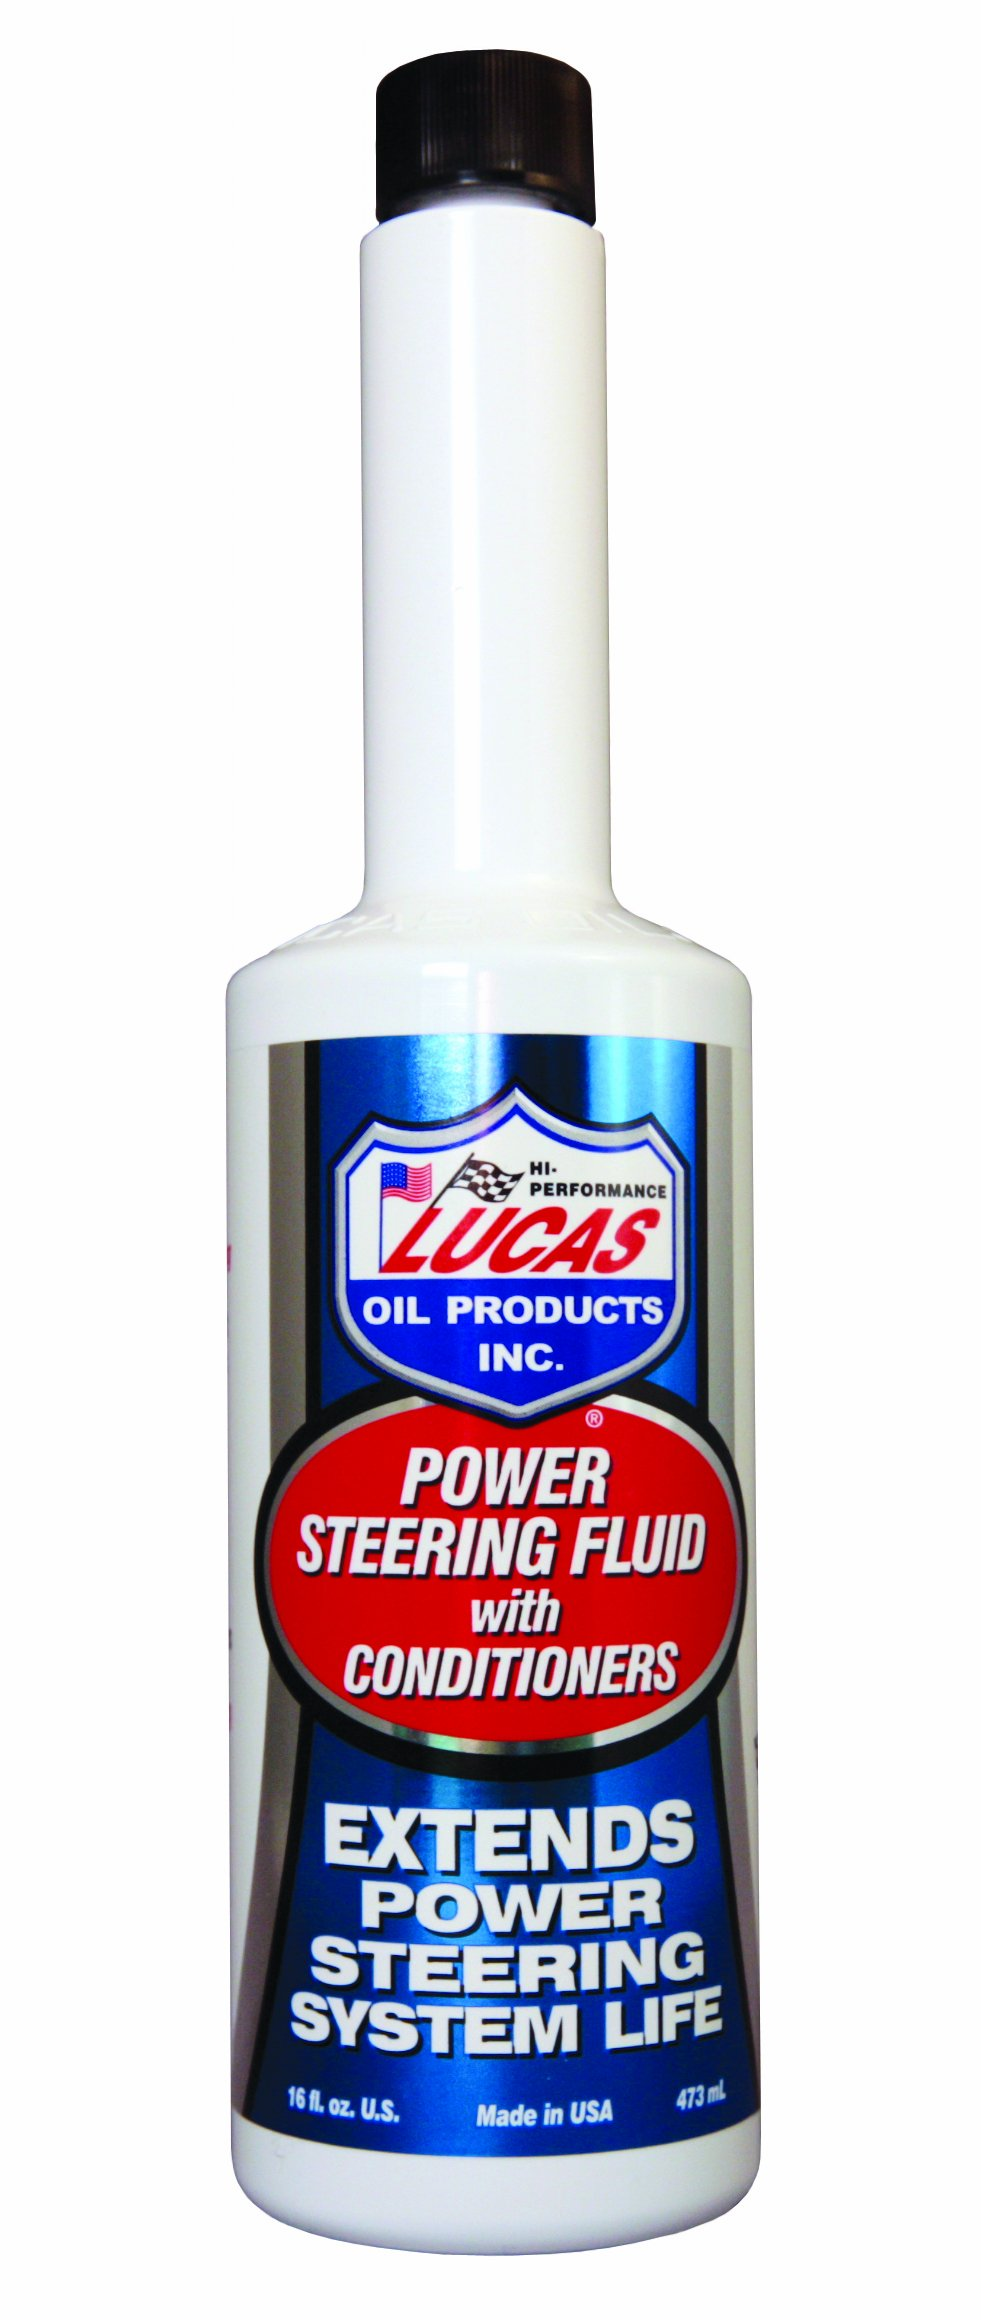 Lucas Oil 10442-12PK Power Steering Fluid with Conditioners - 16 oz., (Case of 12)